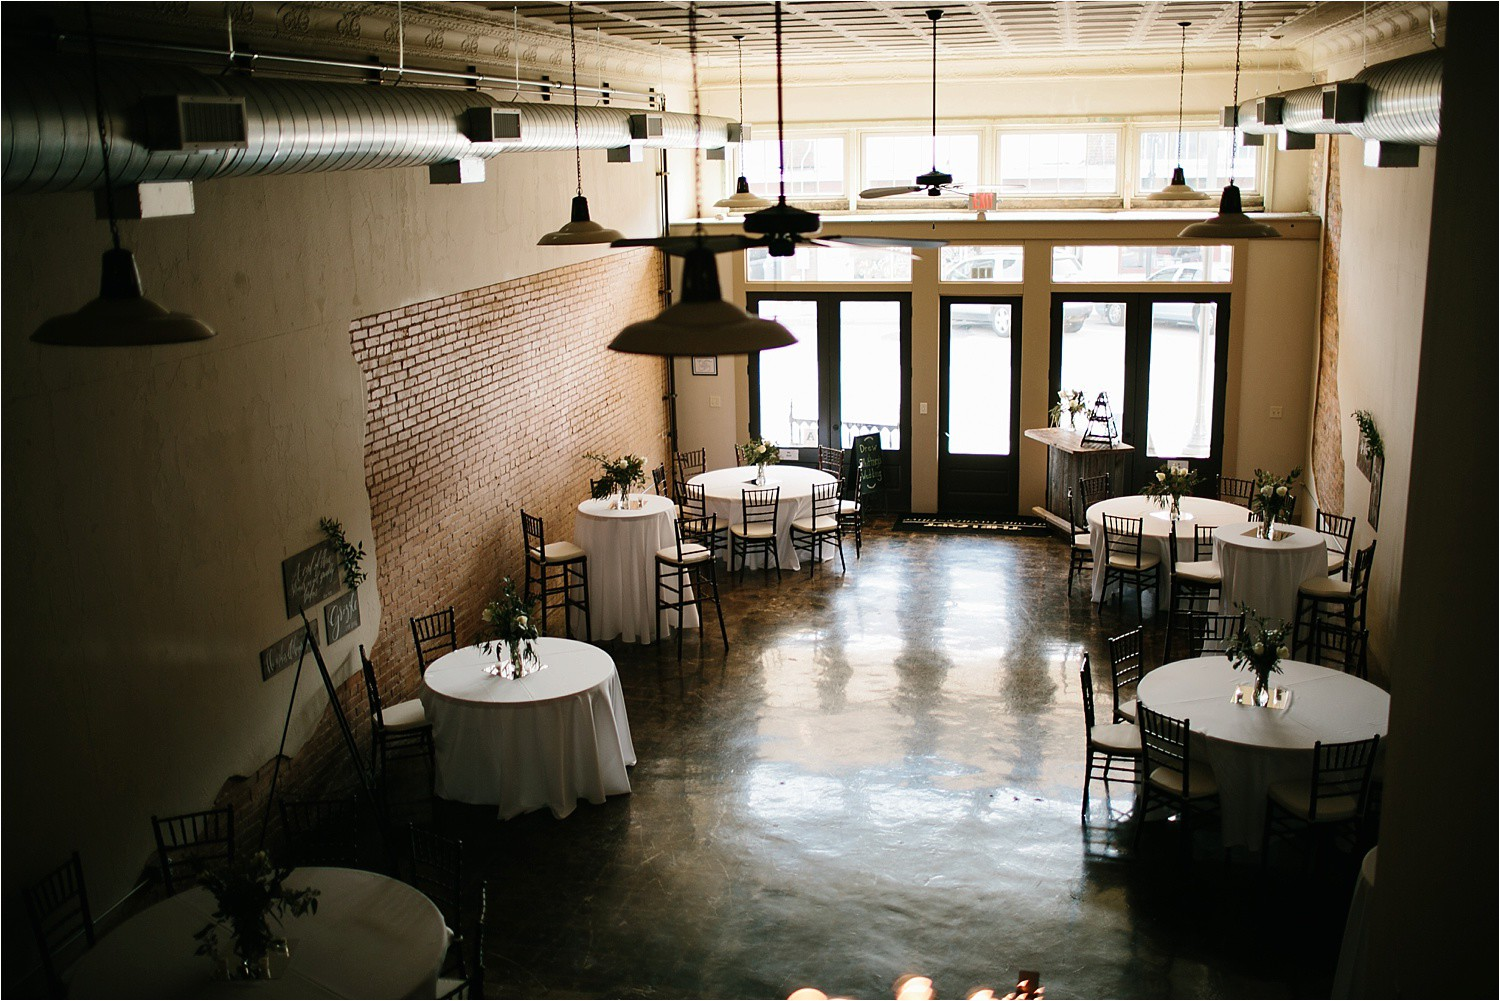 whittney-drew-__-an-intimate-wine-and-navy-wedding-in-an-industrial-venue-at-loft-123-in-paris-tx-by-north-texas-wedding-photographer-rachel-meagan-photography-_-008